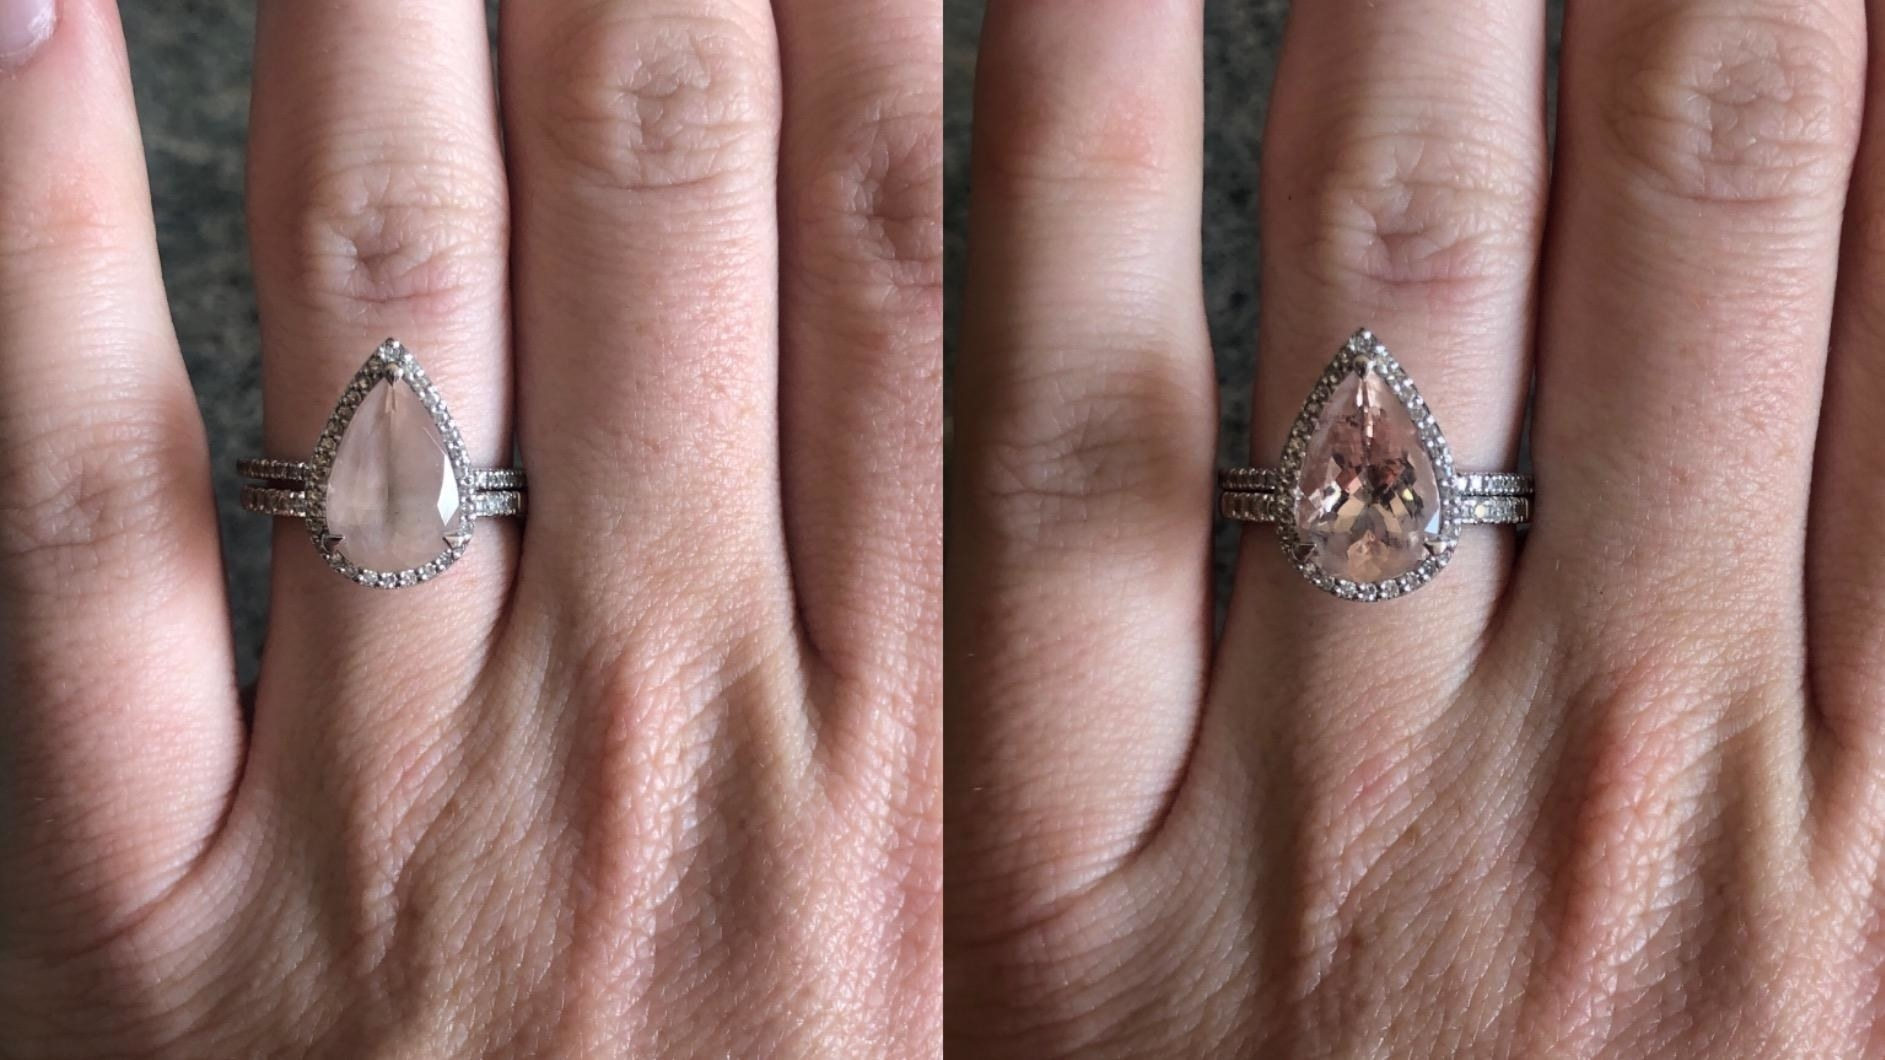 on the left a reviewer's gemstone ring looking cloudy, on the right the same ring looking clear and clean